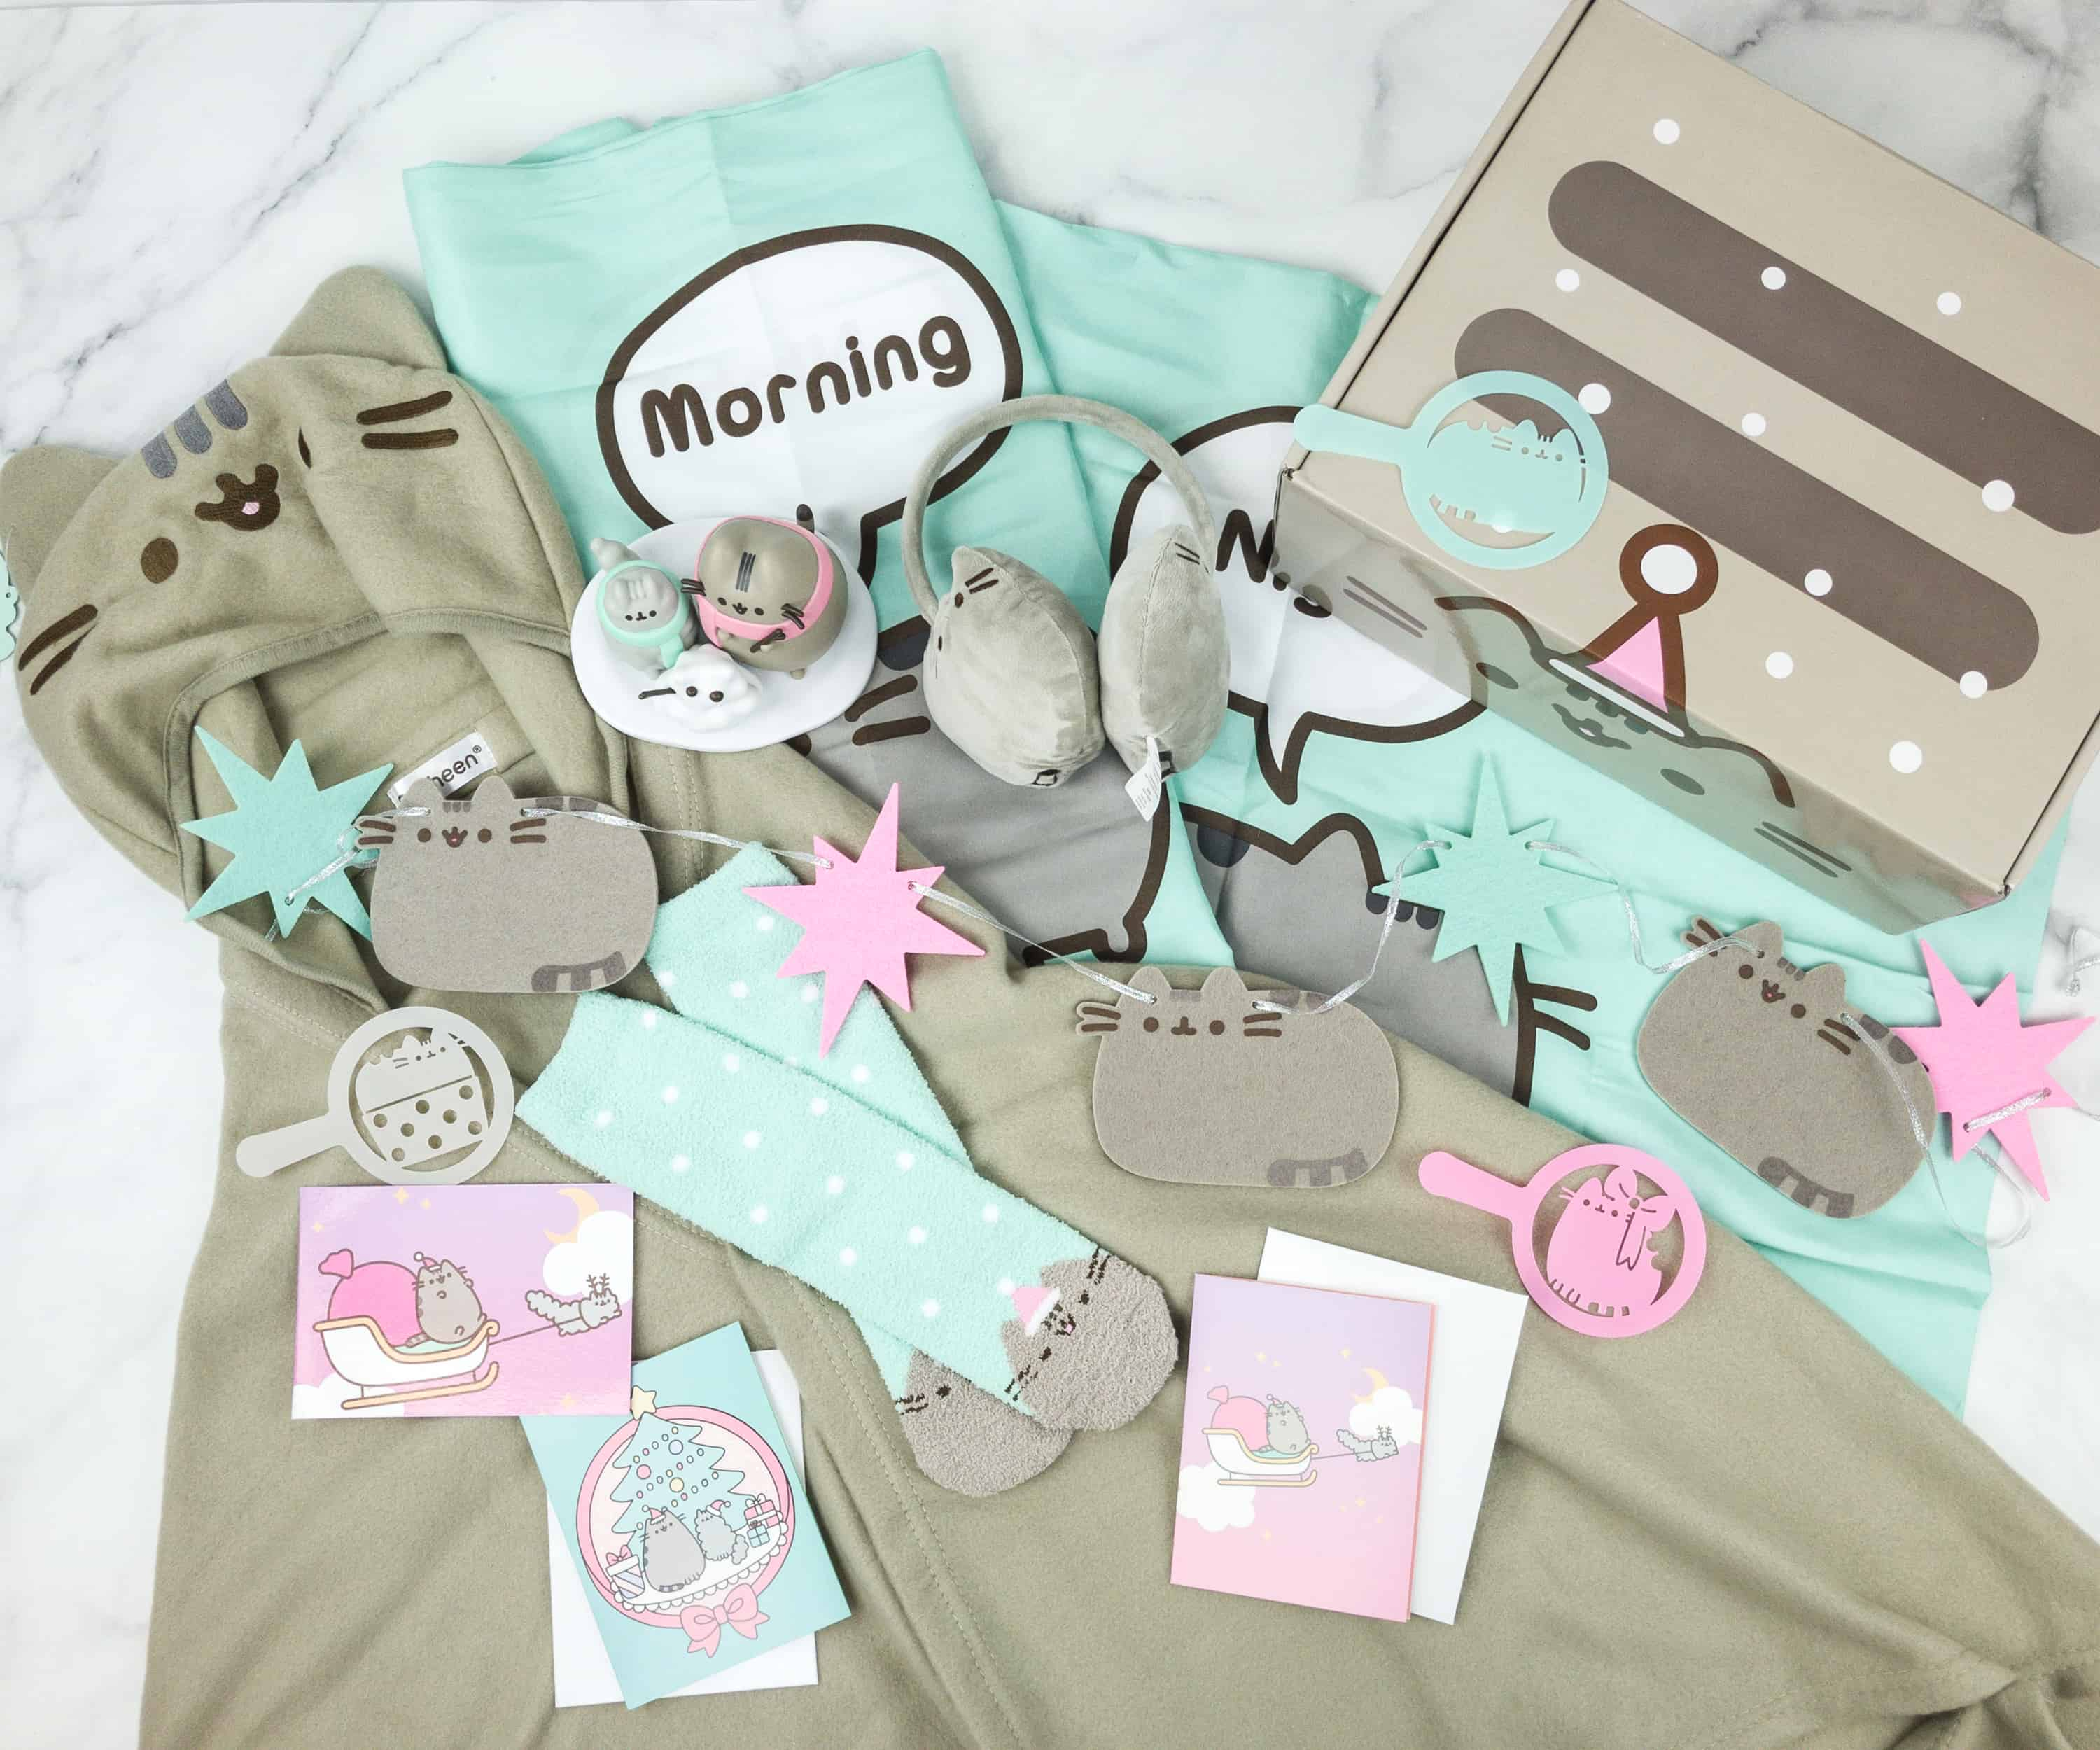 Pusheen Box Winter 2018 Subscription Box Review